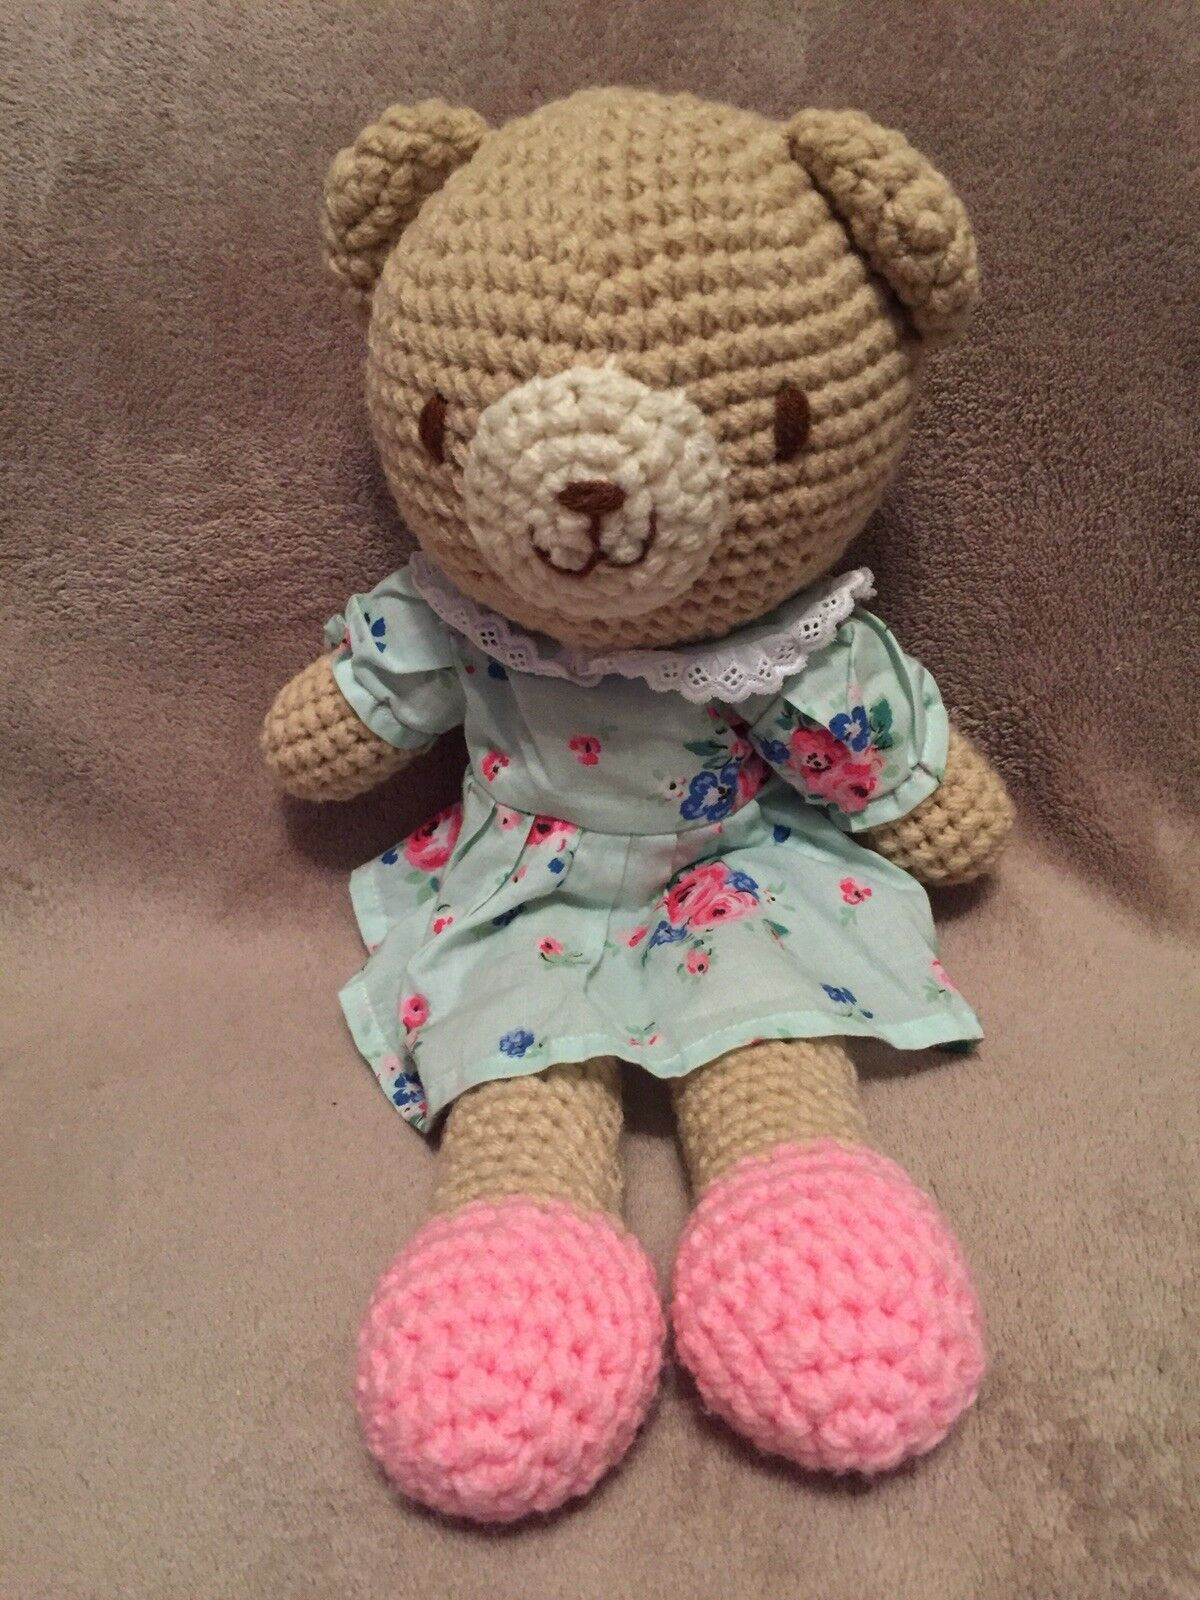 Cath Kids Kidston Crochet Knitted Teddy Bear Floral Dress Soft Toy 38cm